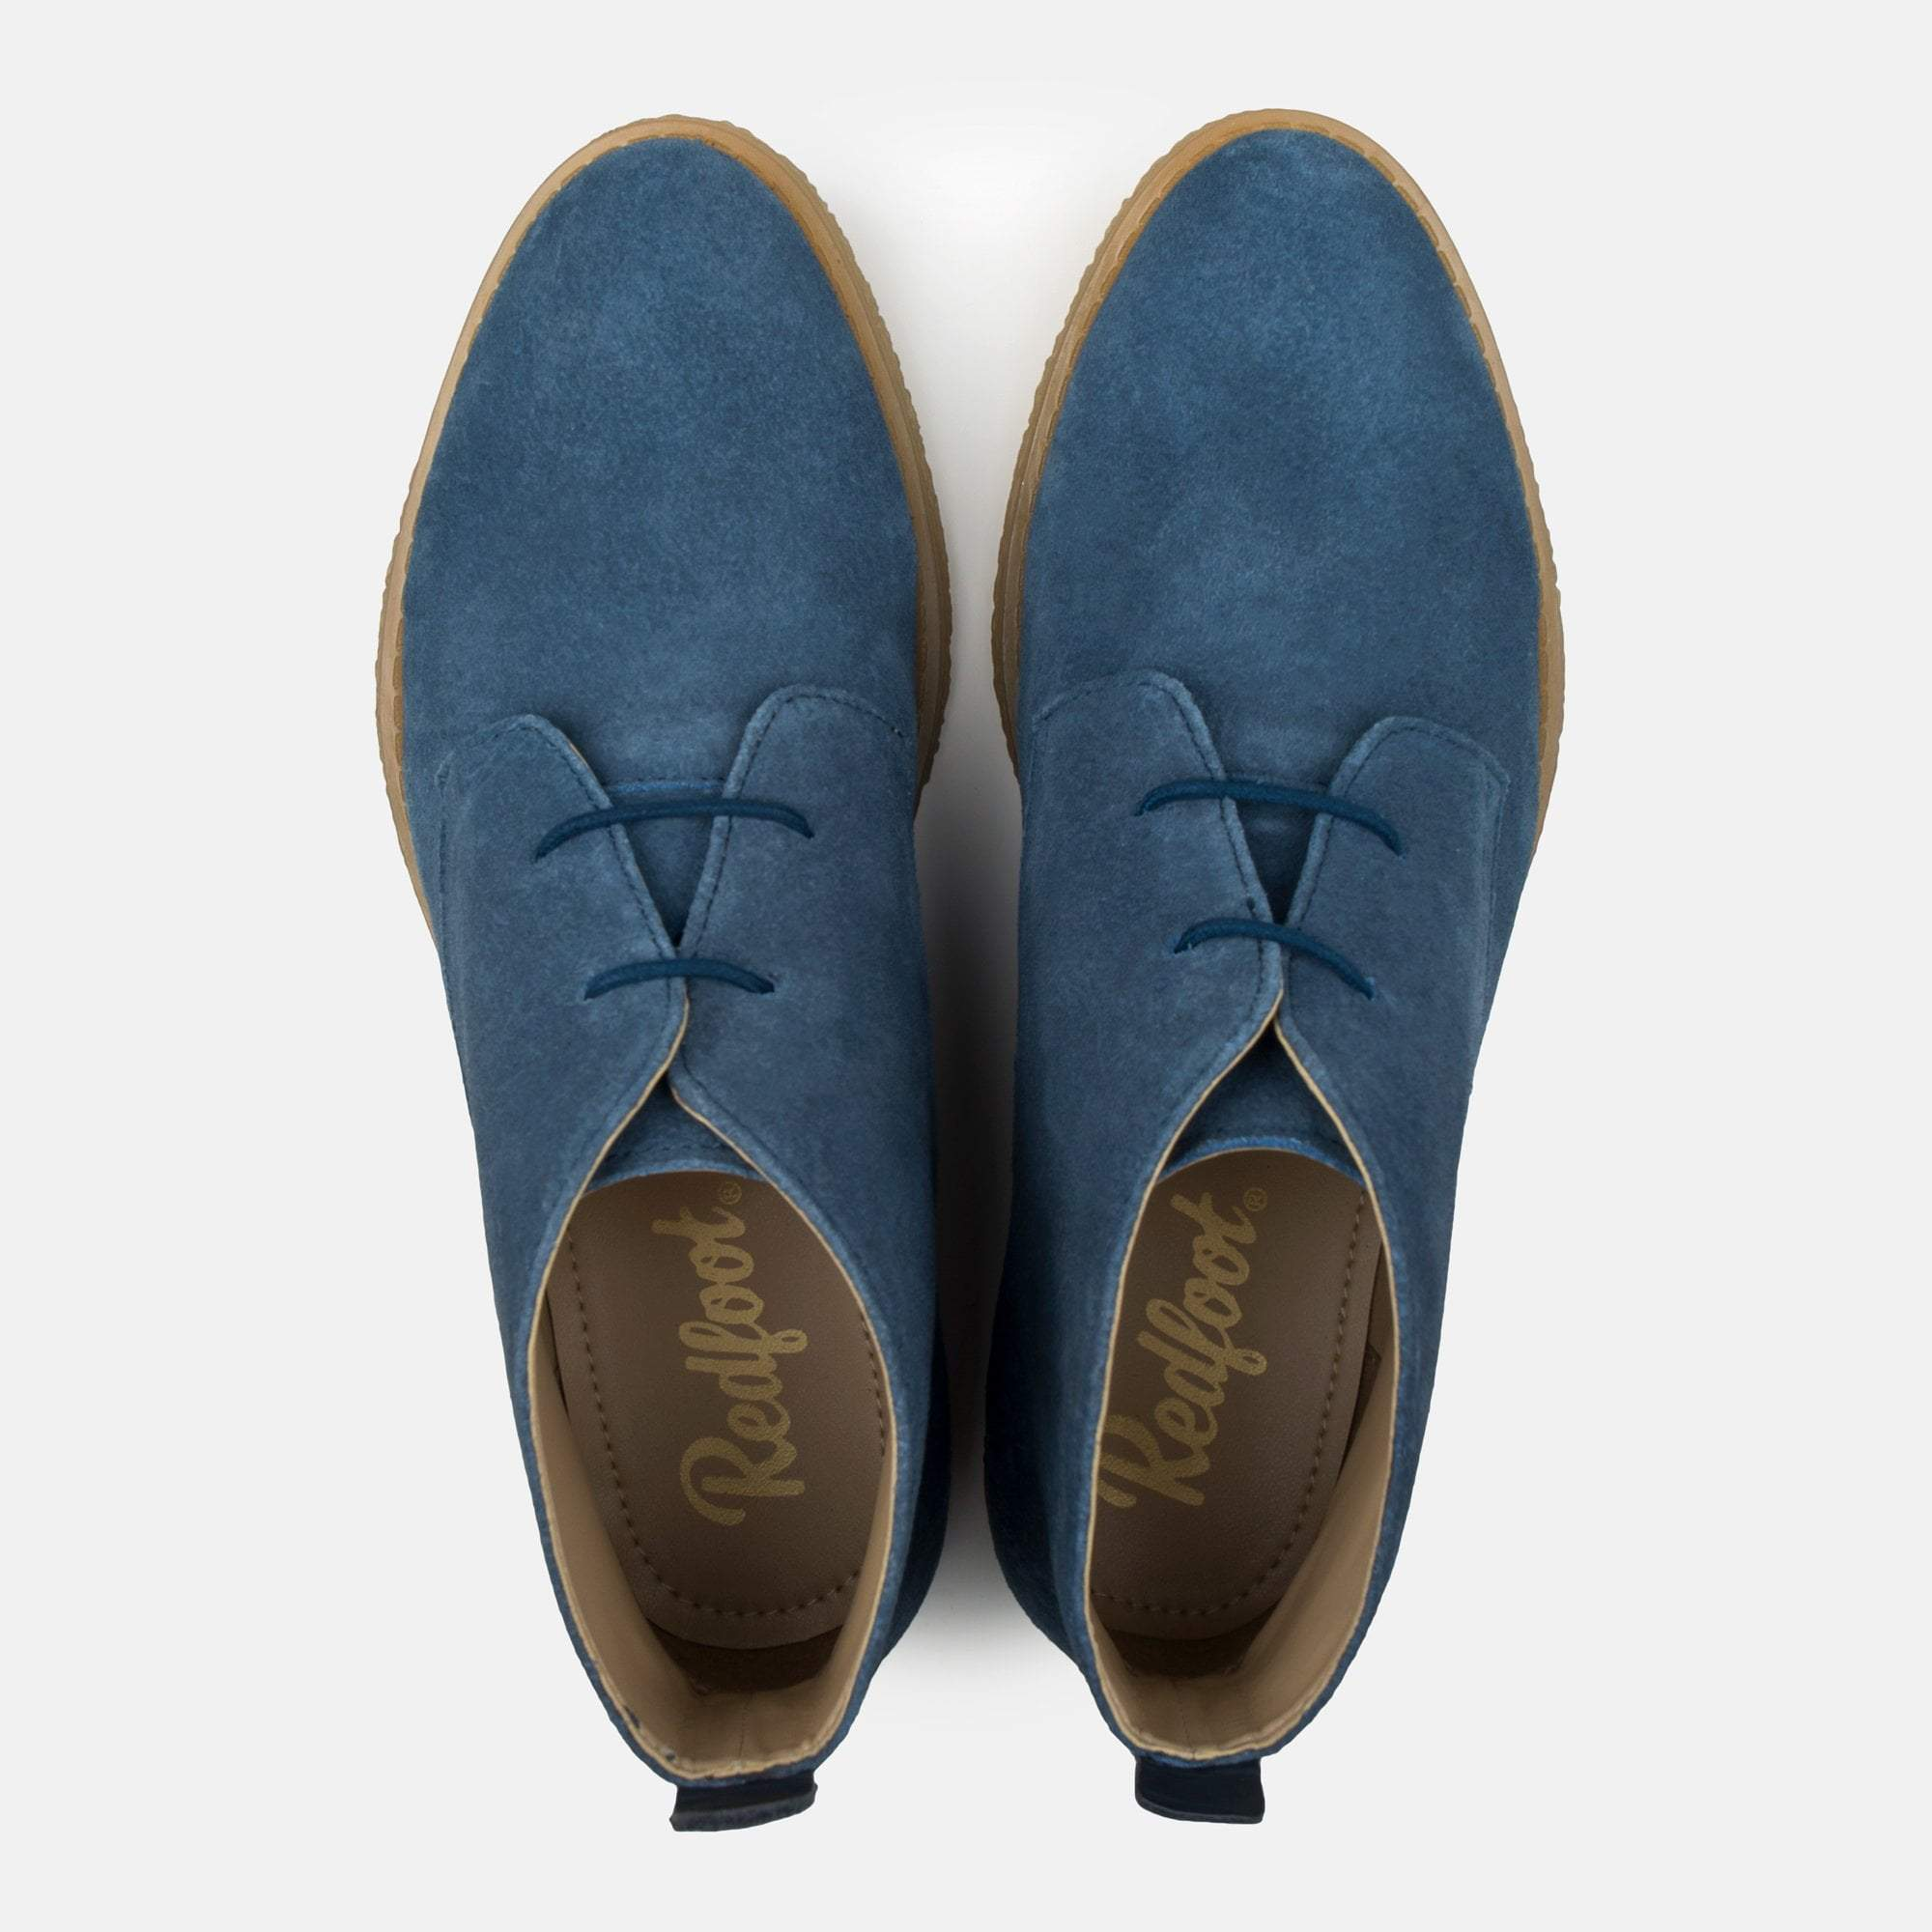 Redfoot Footwear UK 3 / EURO 36 / US 5 / Blue / Suede ISLA DUSKY BLUE